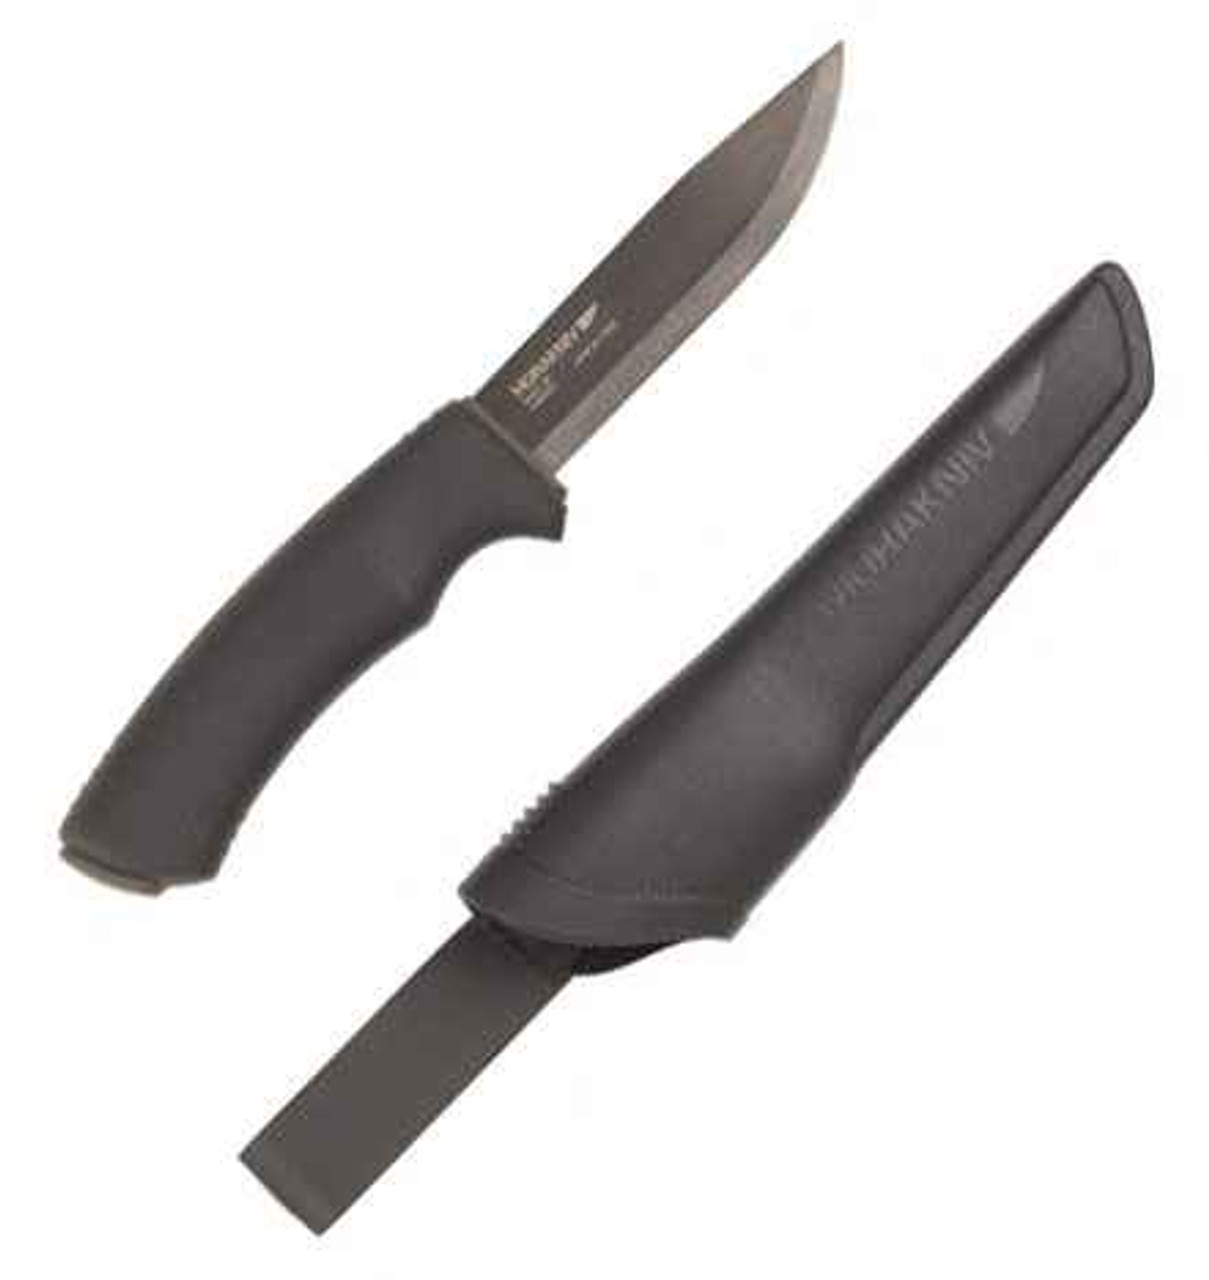 Mora Bushcraft Series Heavy, Black Coated Blade